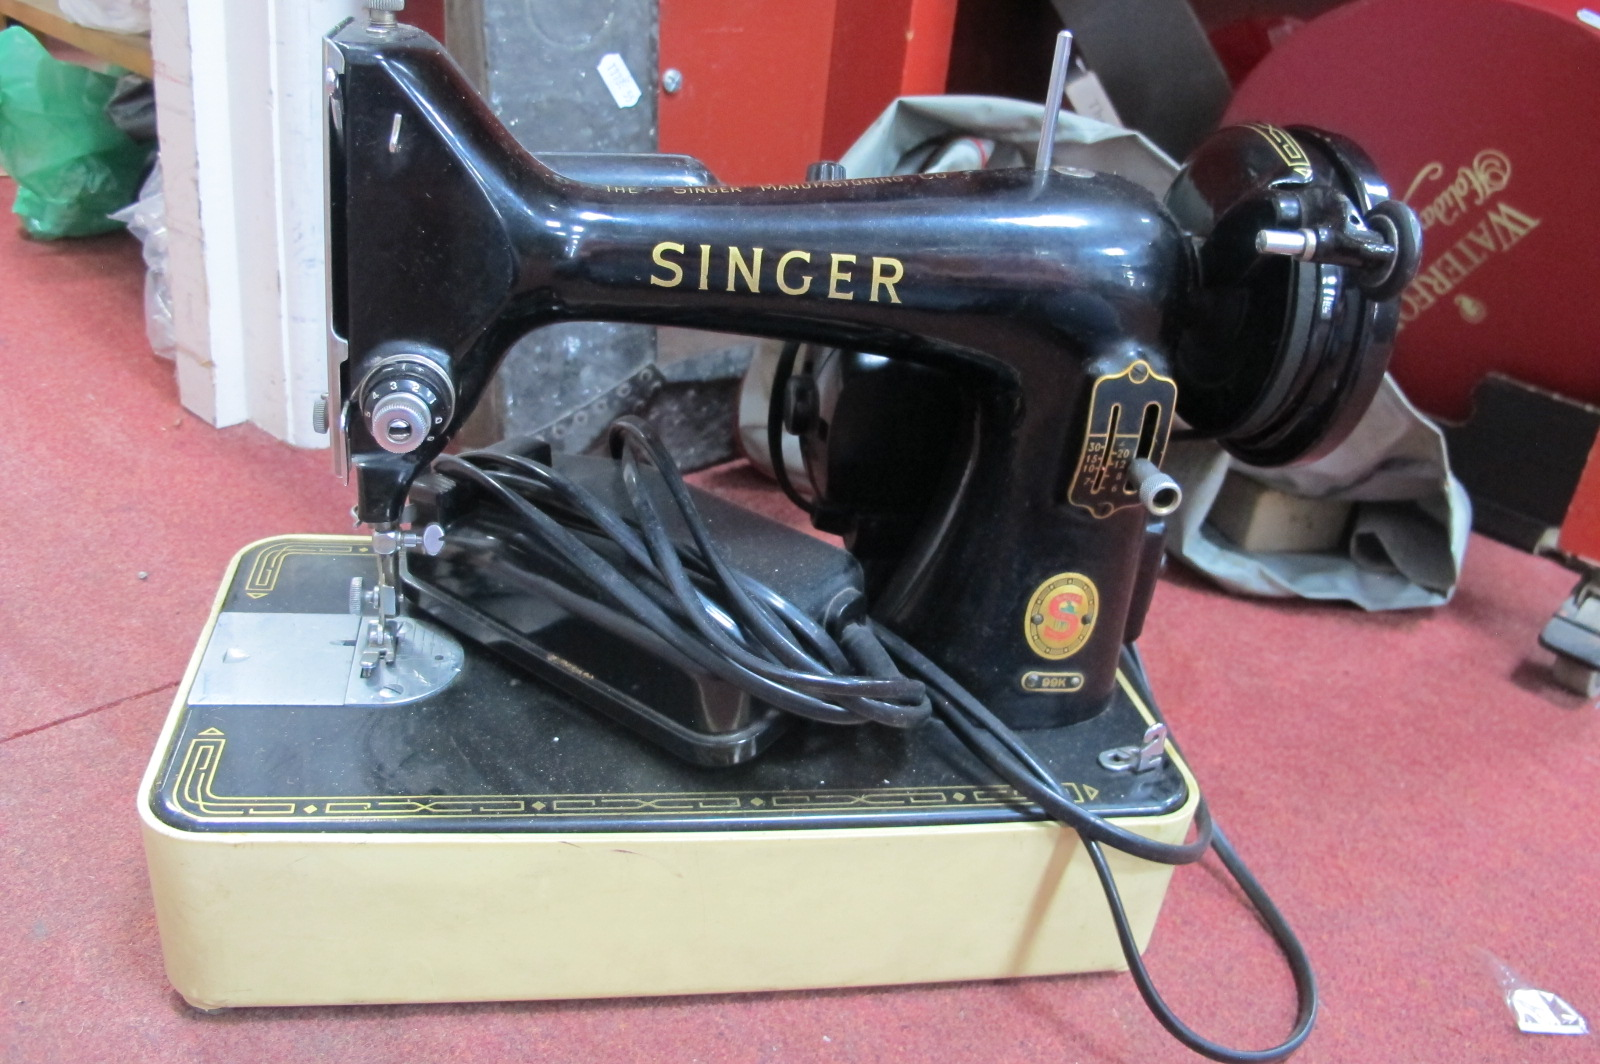 A Singer Sewing Machine. Beaten brass covered fender in the arts and crafts manner. (2)